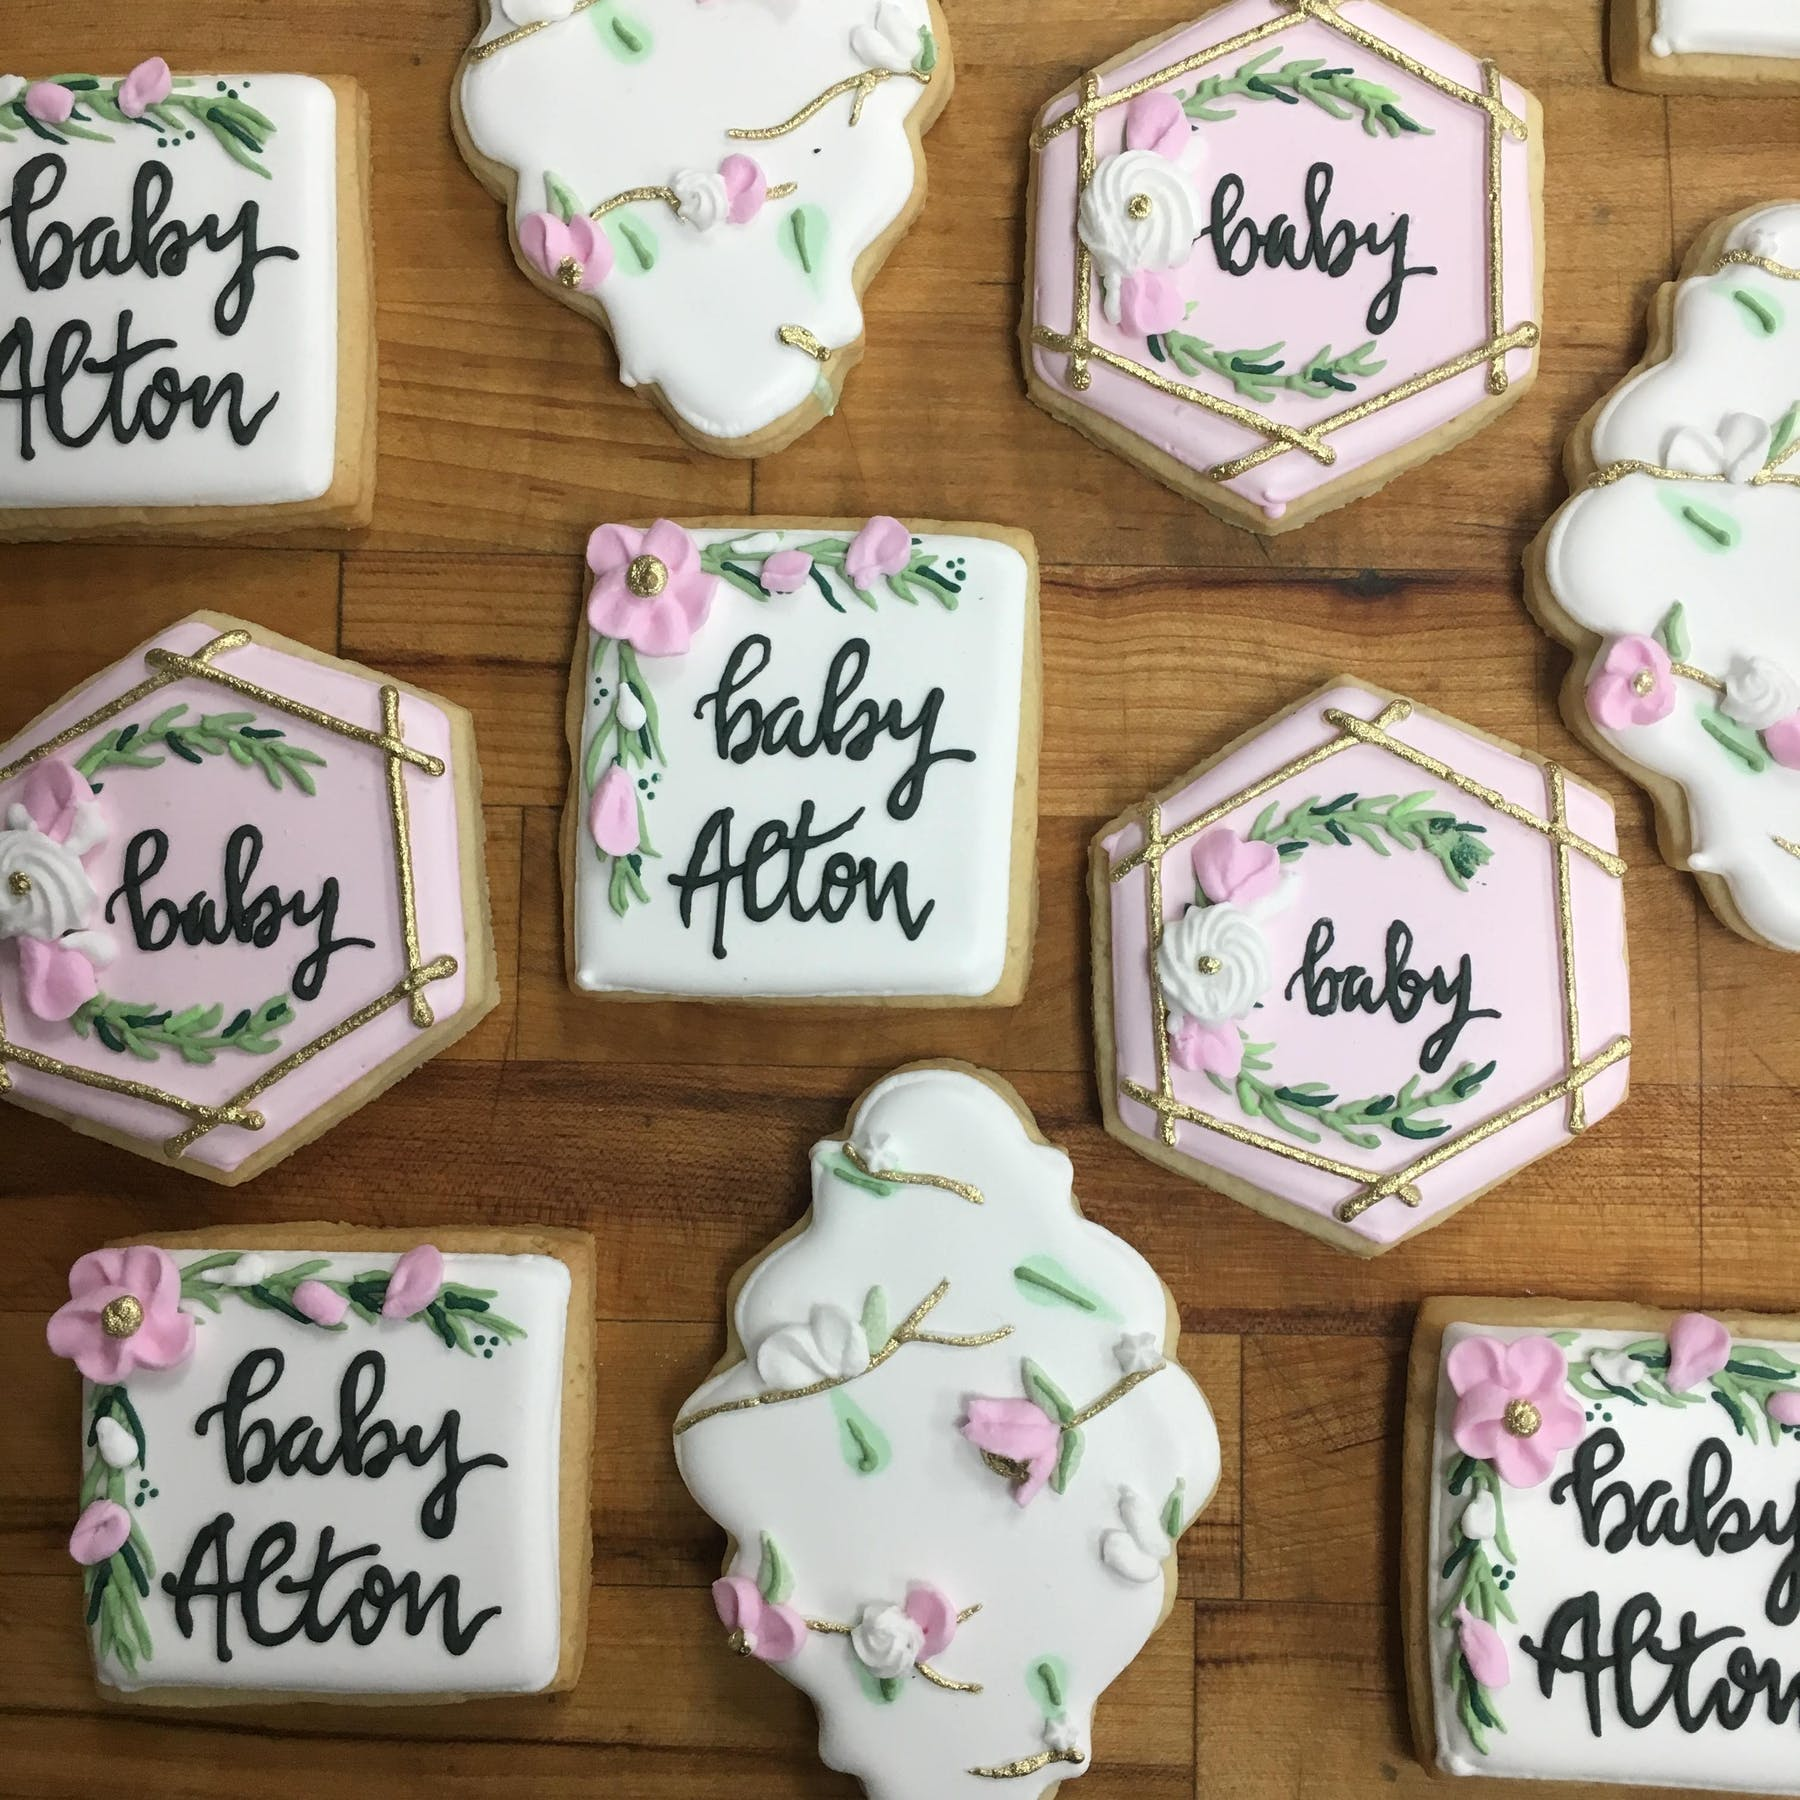 floral themed decorated cookies for baby girl shower